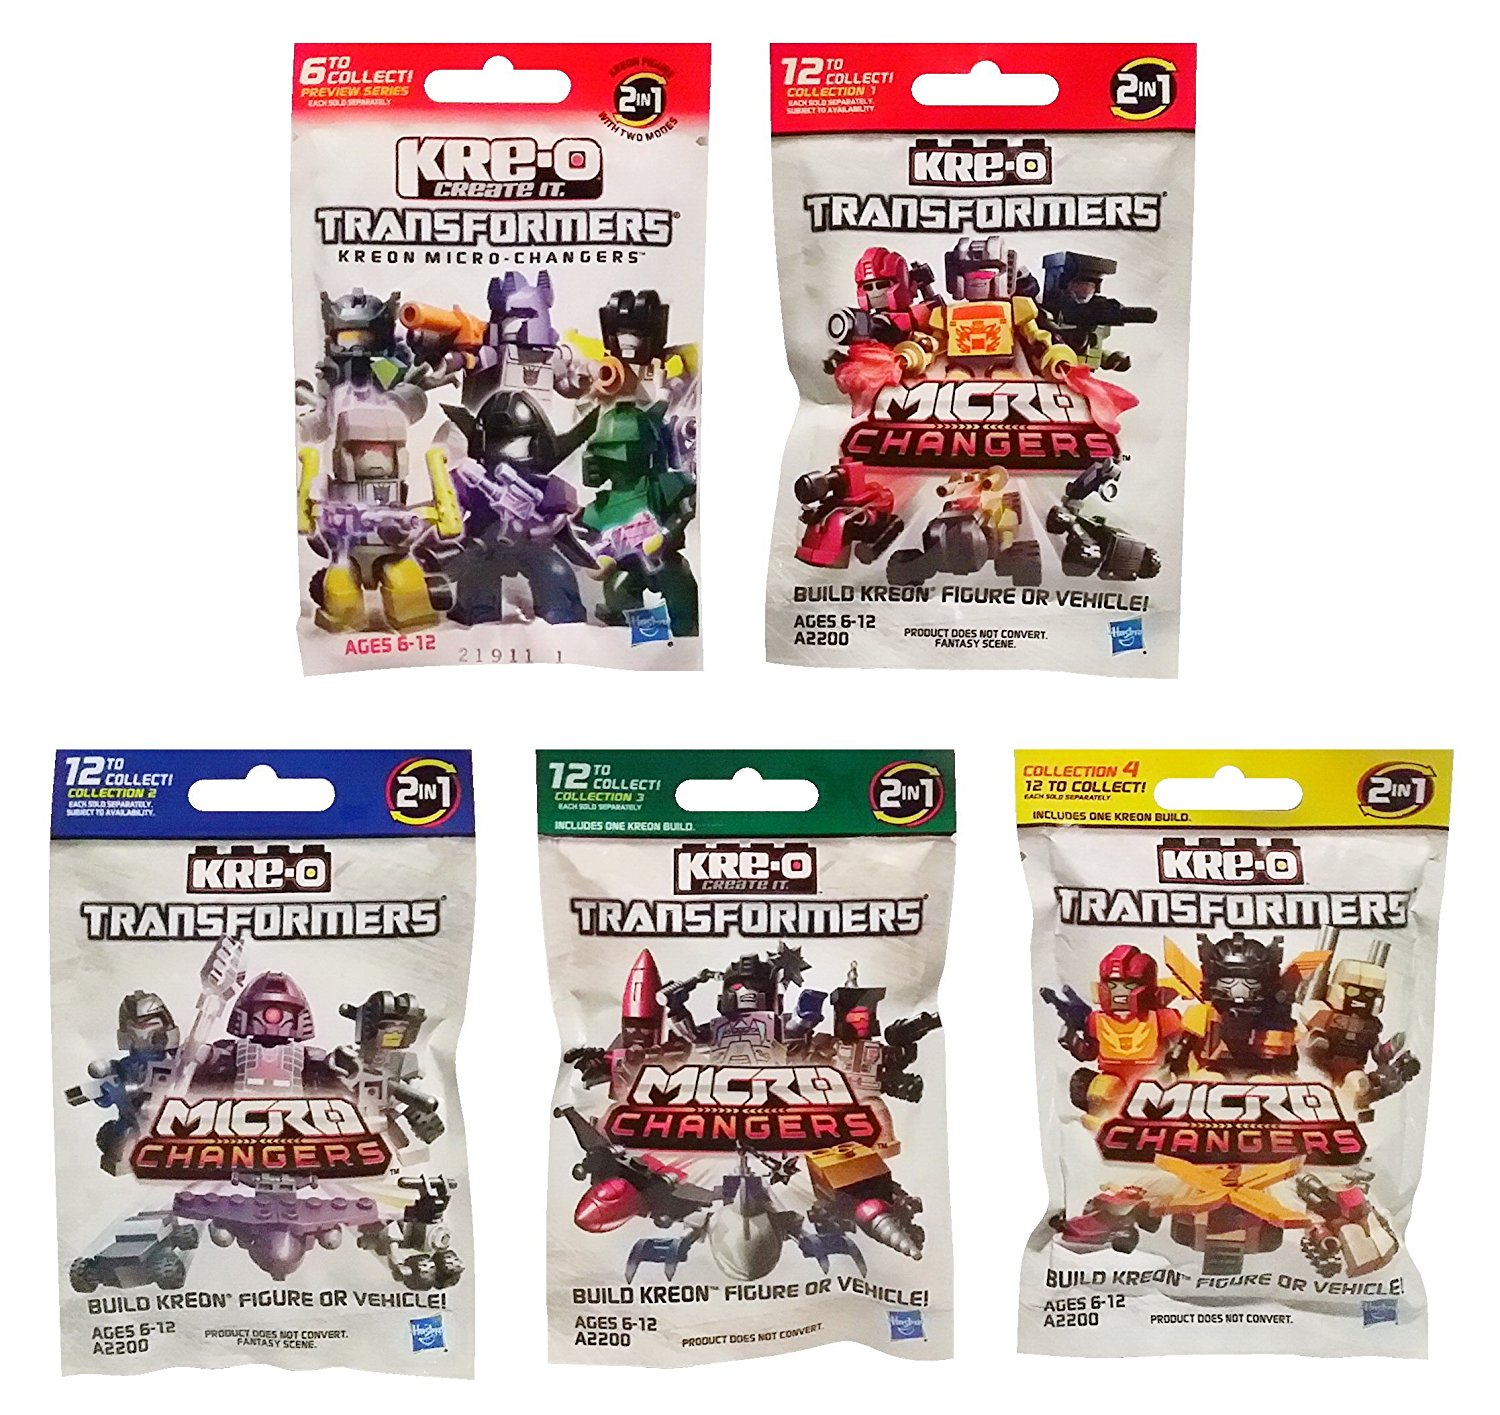 Kre-O Transformers Micro Changers 5 Pack Bundle includes: Preview Series & Collection 1, 2, 3 & 4 Mini Figure Blind Bag Mystery Packs (1 Pack of Each)